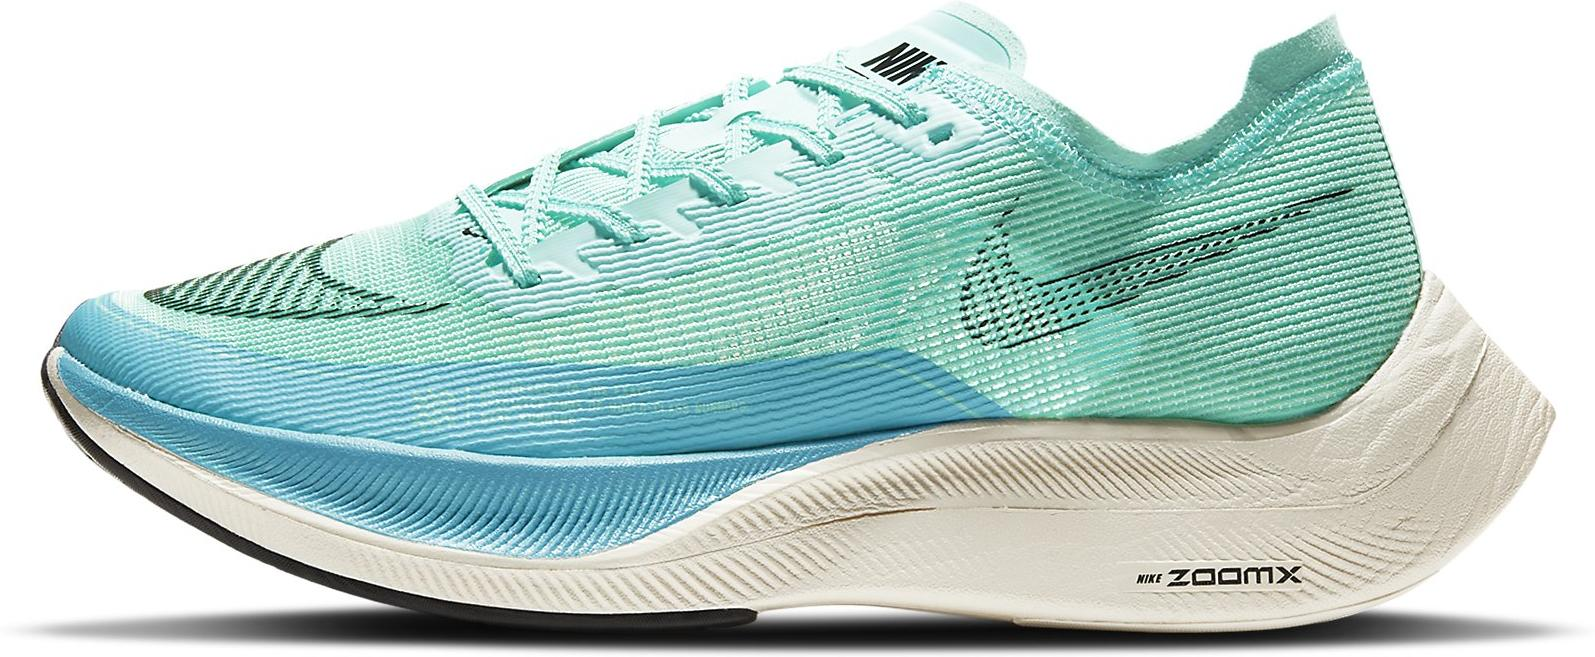 Running shoes Nike ZOOMX VAPORFLY NEXT% 2